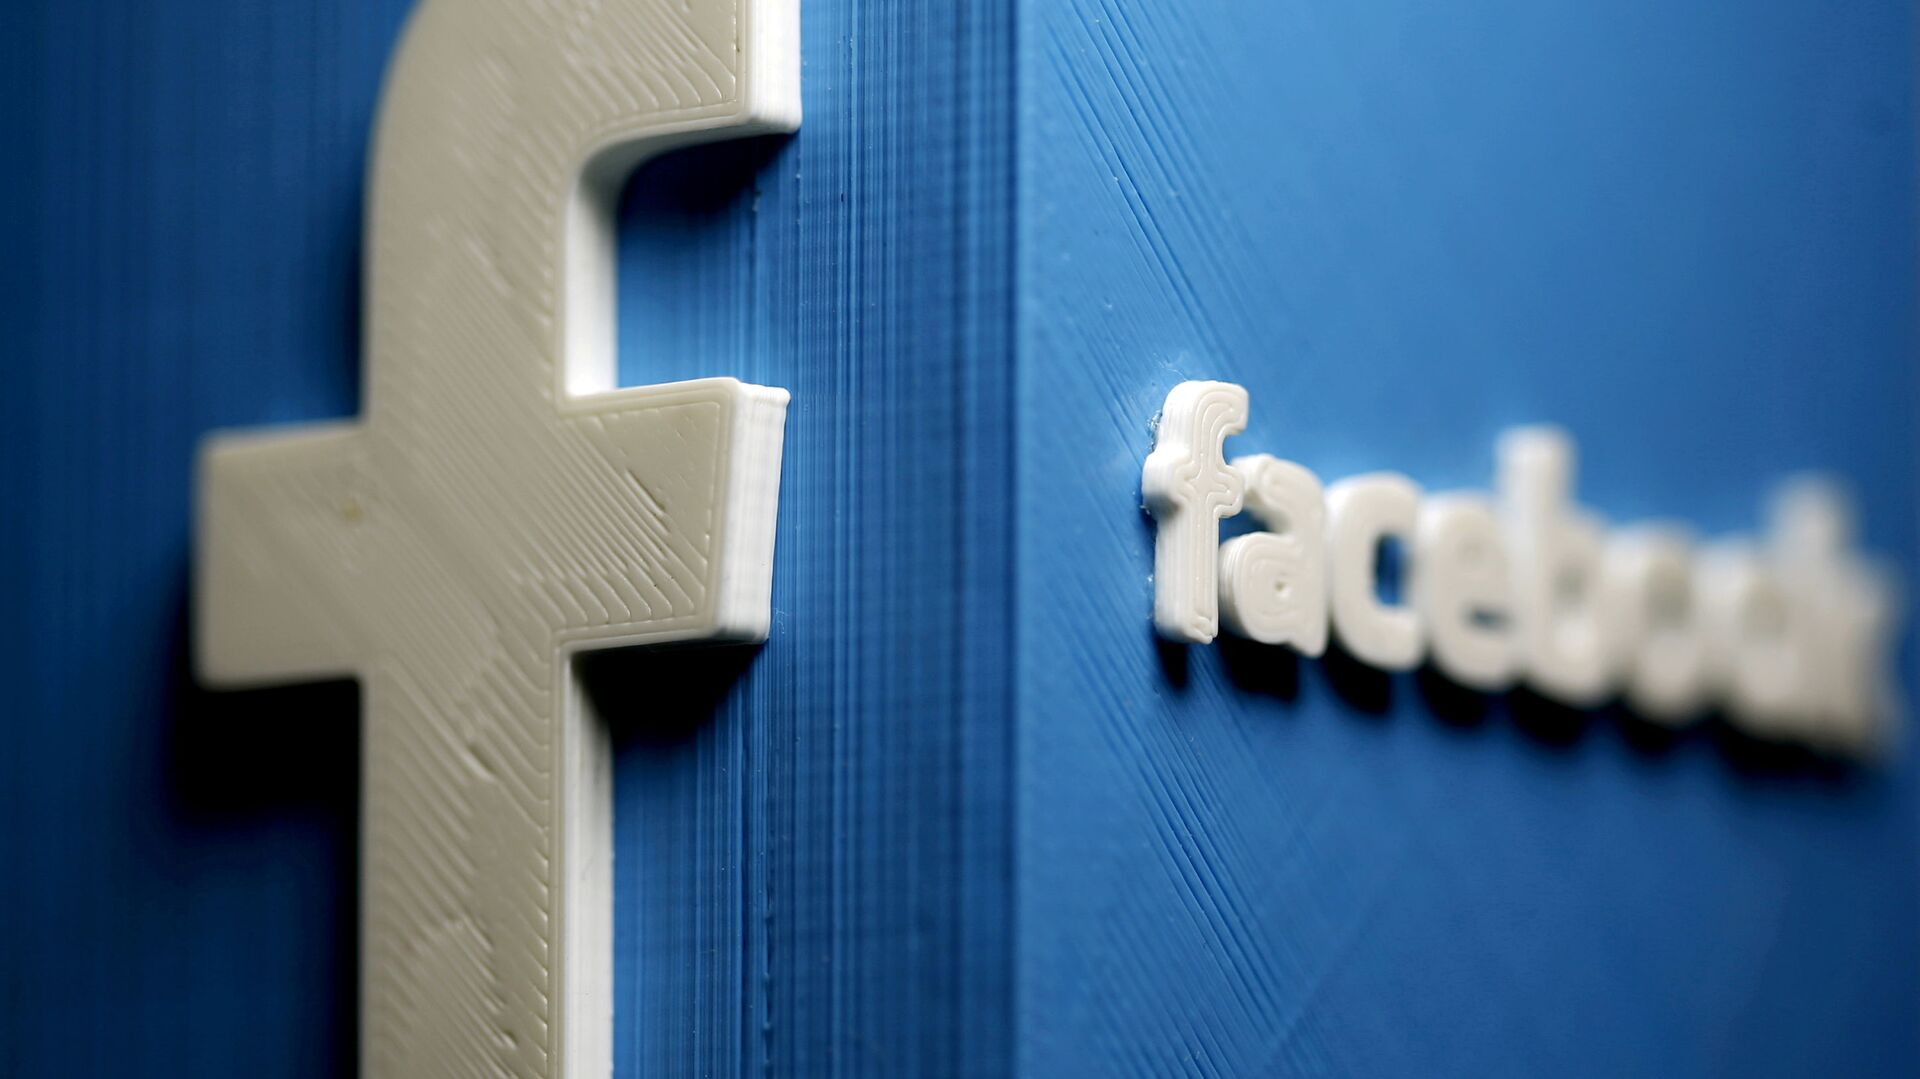 A 3D plastic representation of the Facebook logo is seen in this illustration in Zenica, Bosnia and Herzegovina, May 13, 2015. REUTERS/Dado Ruvic//File Photo/File Photo - Sputnik International, 1920, 22.09.2021